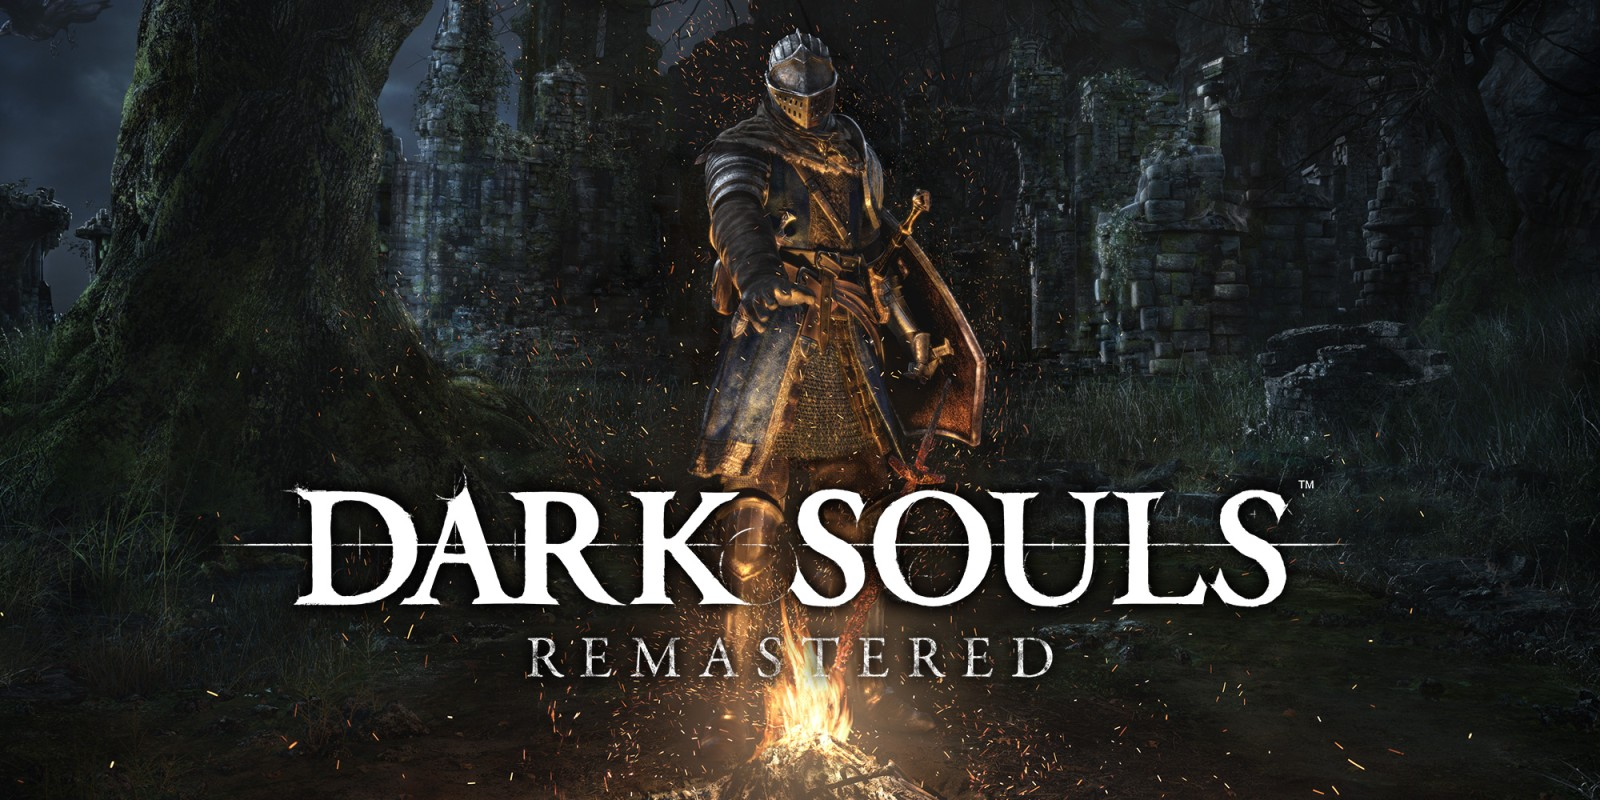 Dark Souls Remastered New Gameplay Footage Showcases